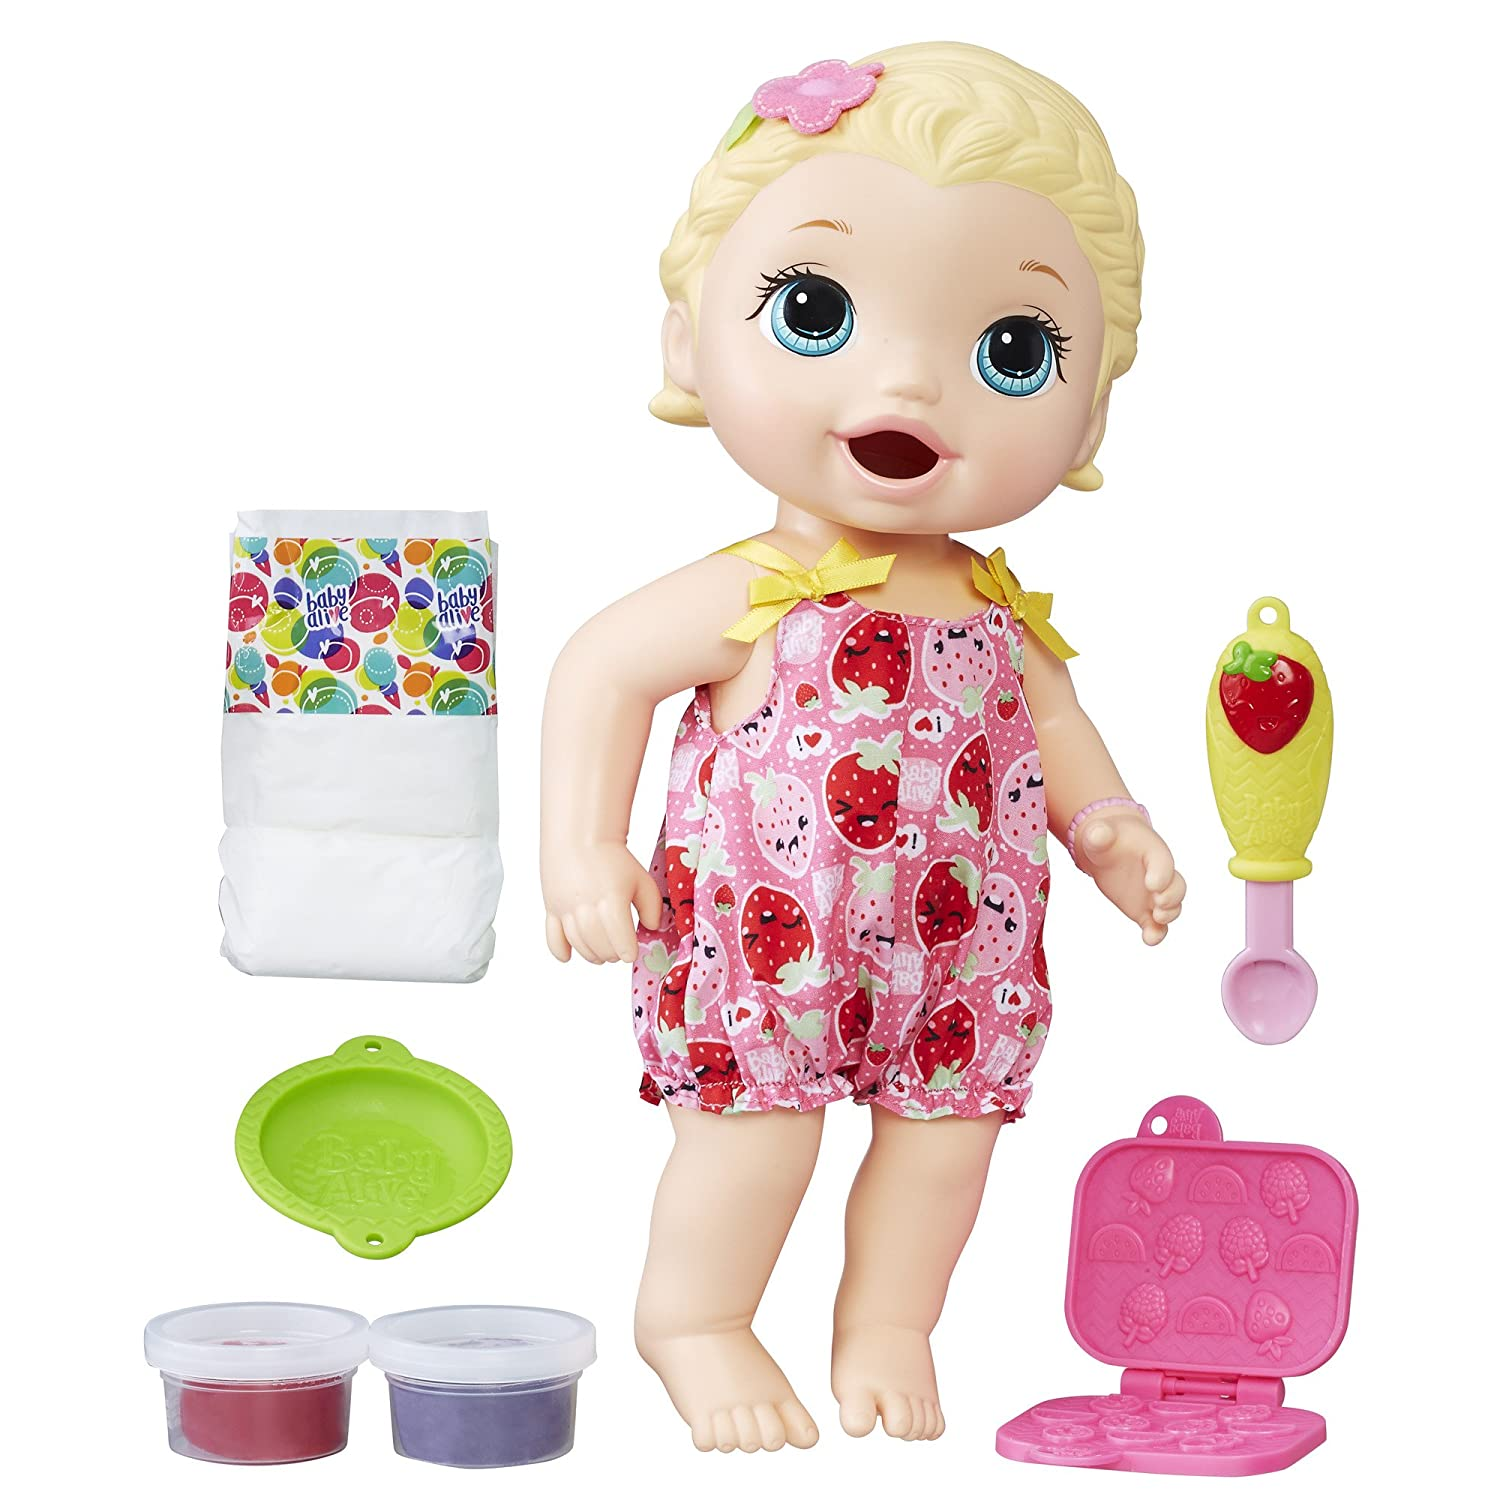 Doll Buy Dolls For Girls online at best prices in India Amazon